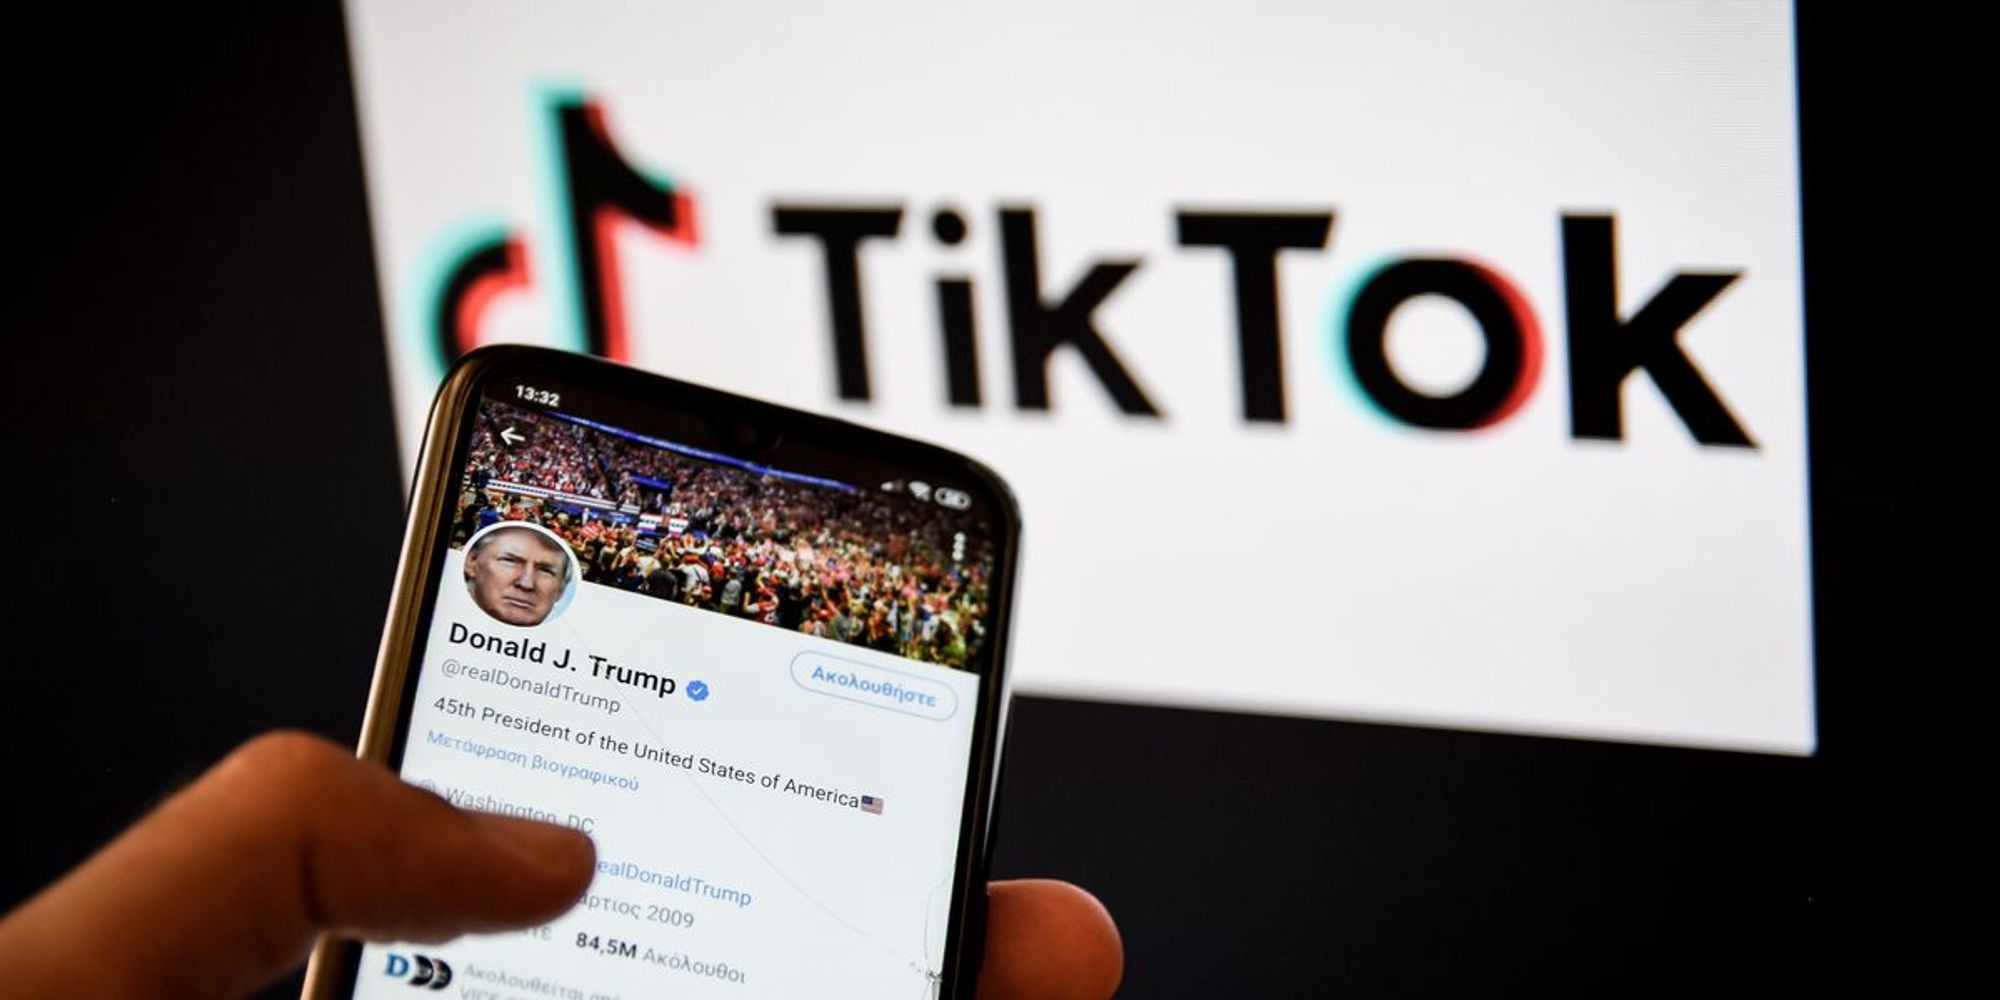 'This has been botched': This is what makes Trump's TikTok tirade so unusual